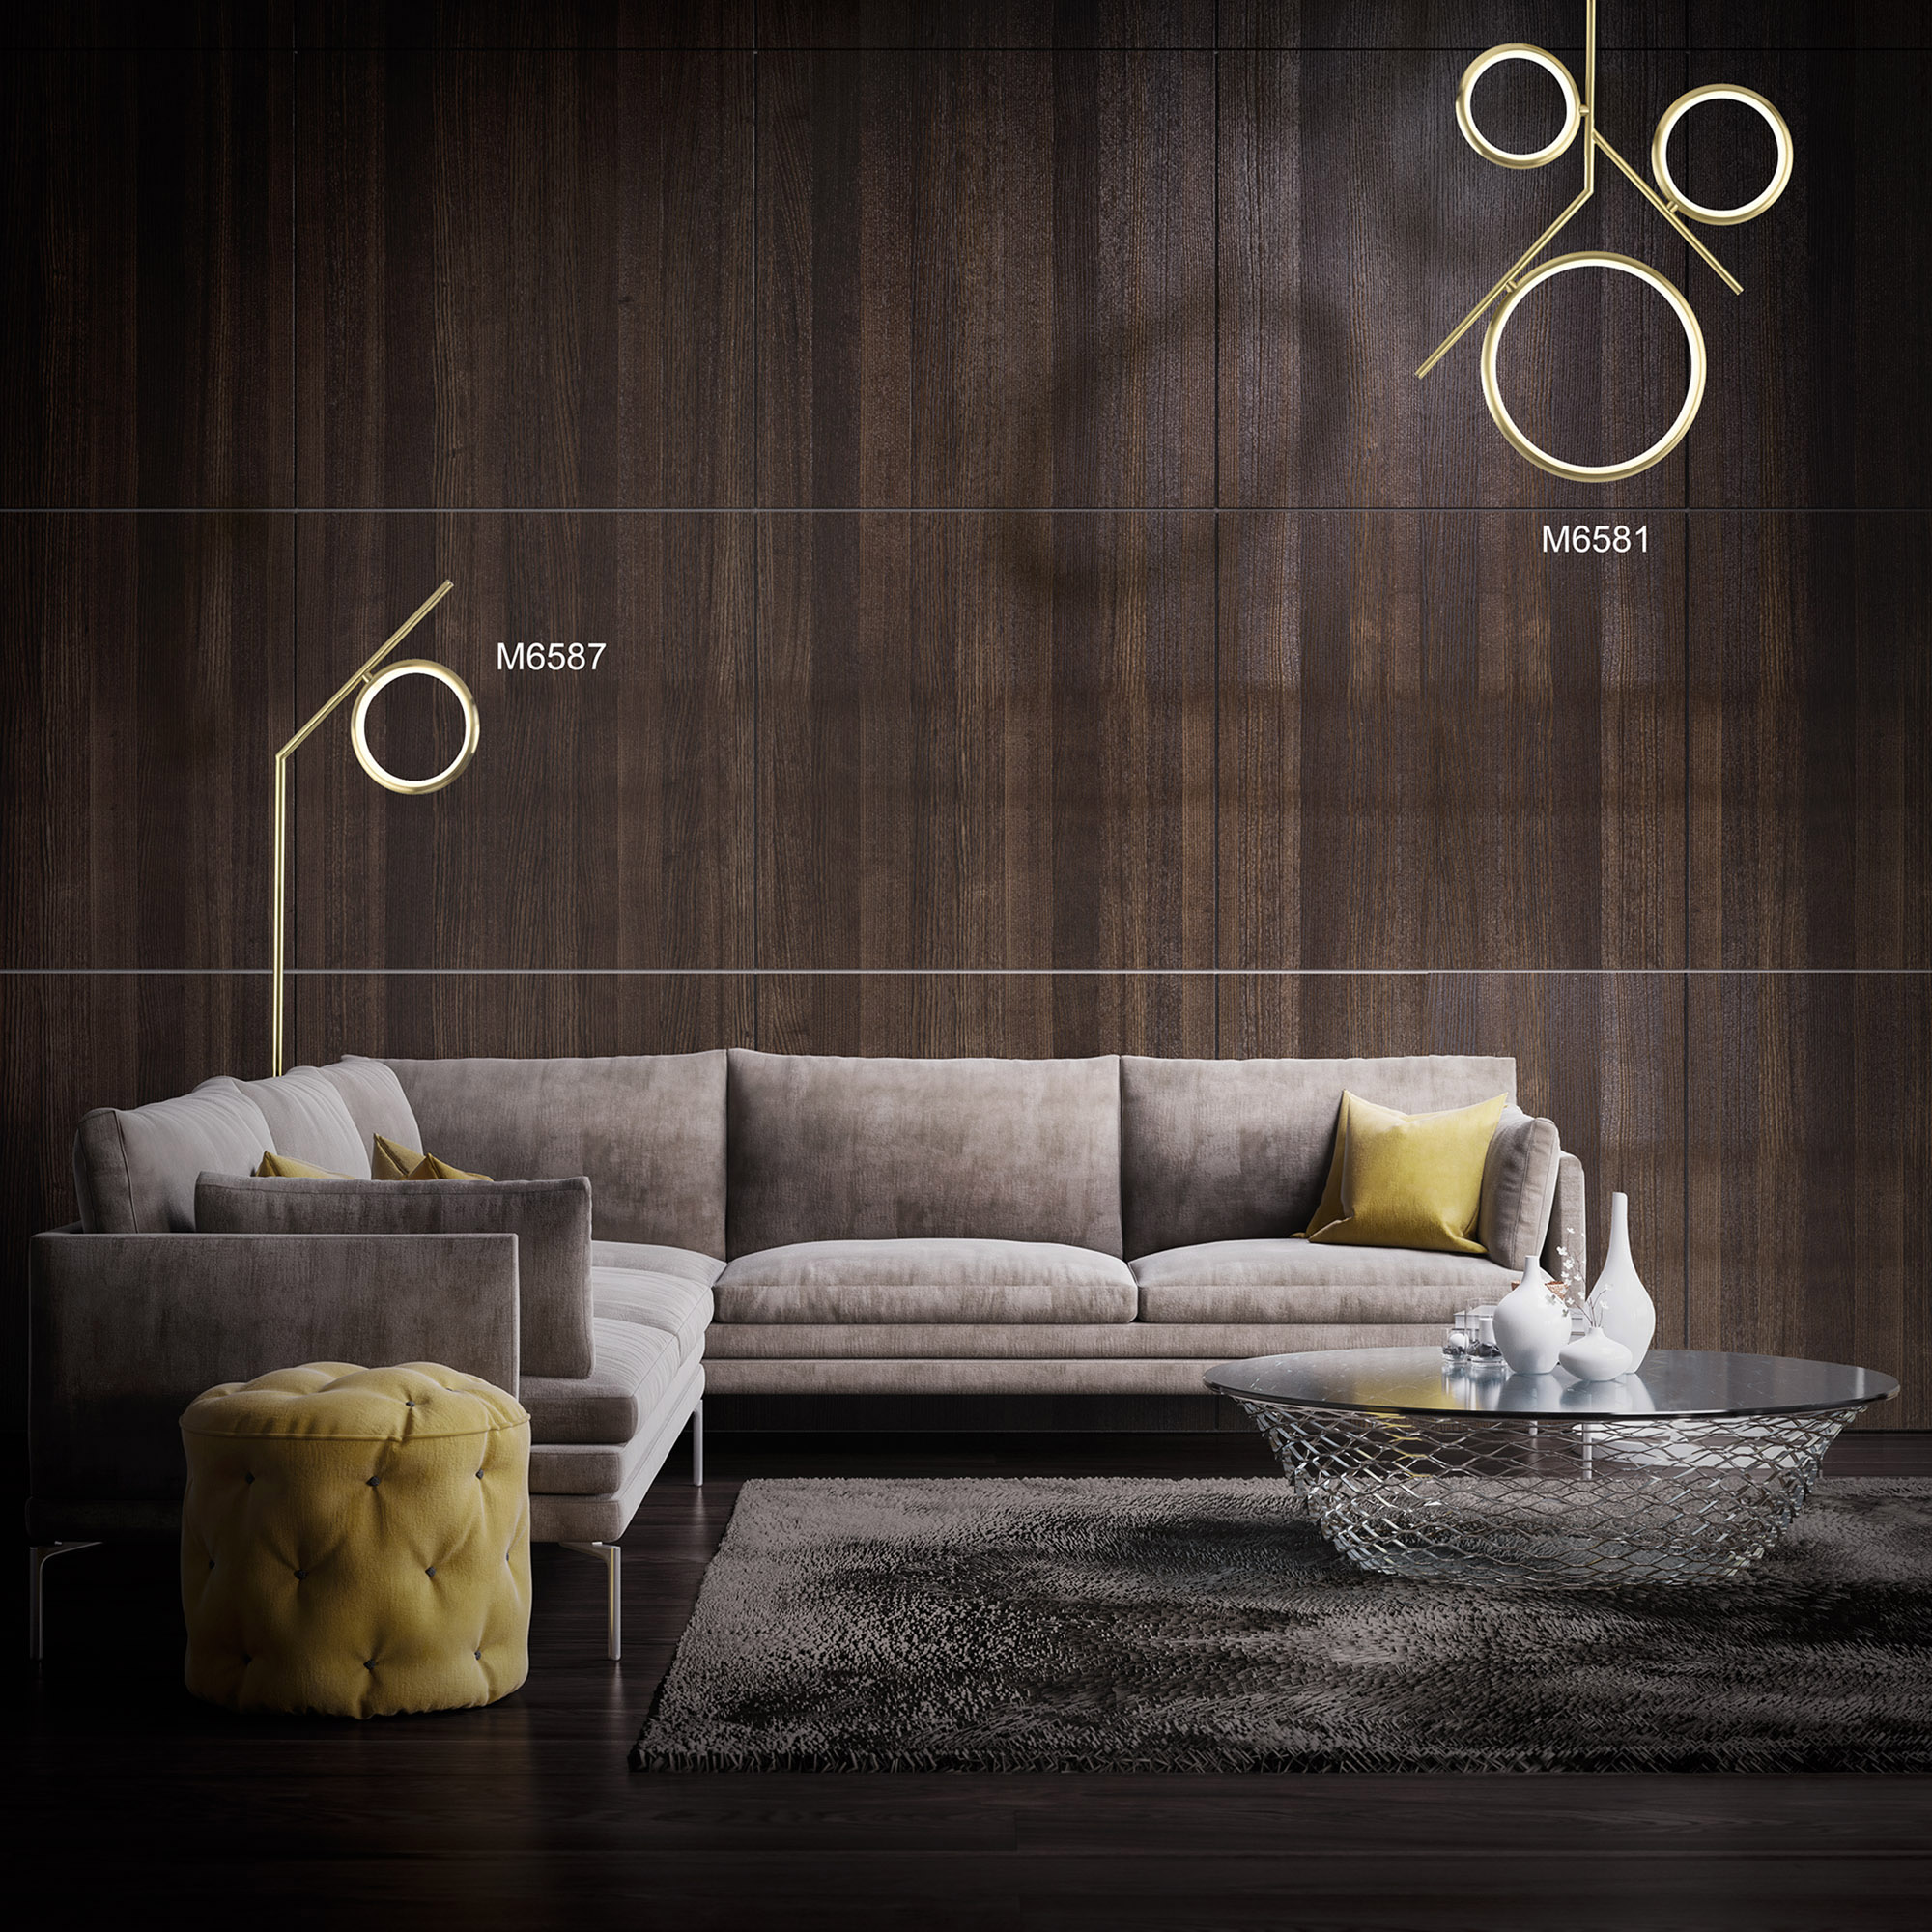 Olimpia SG Ceiling Lights Mantra Contemporary Ceiling Lights